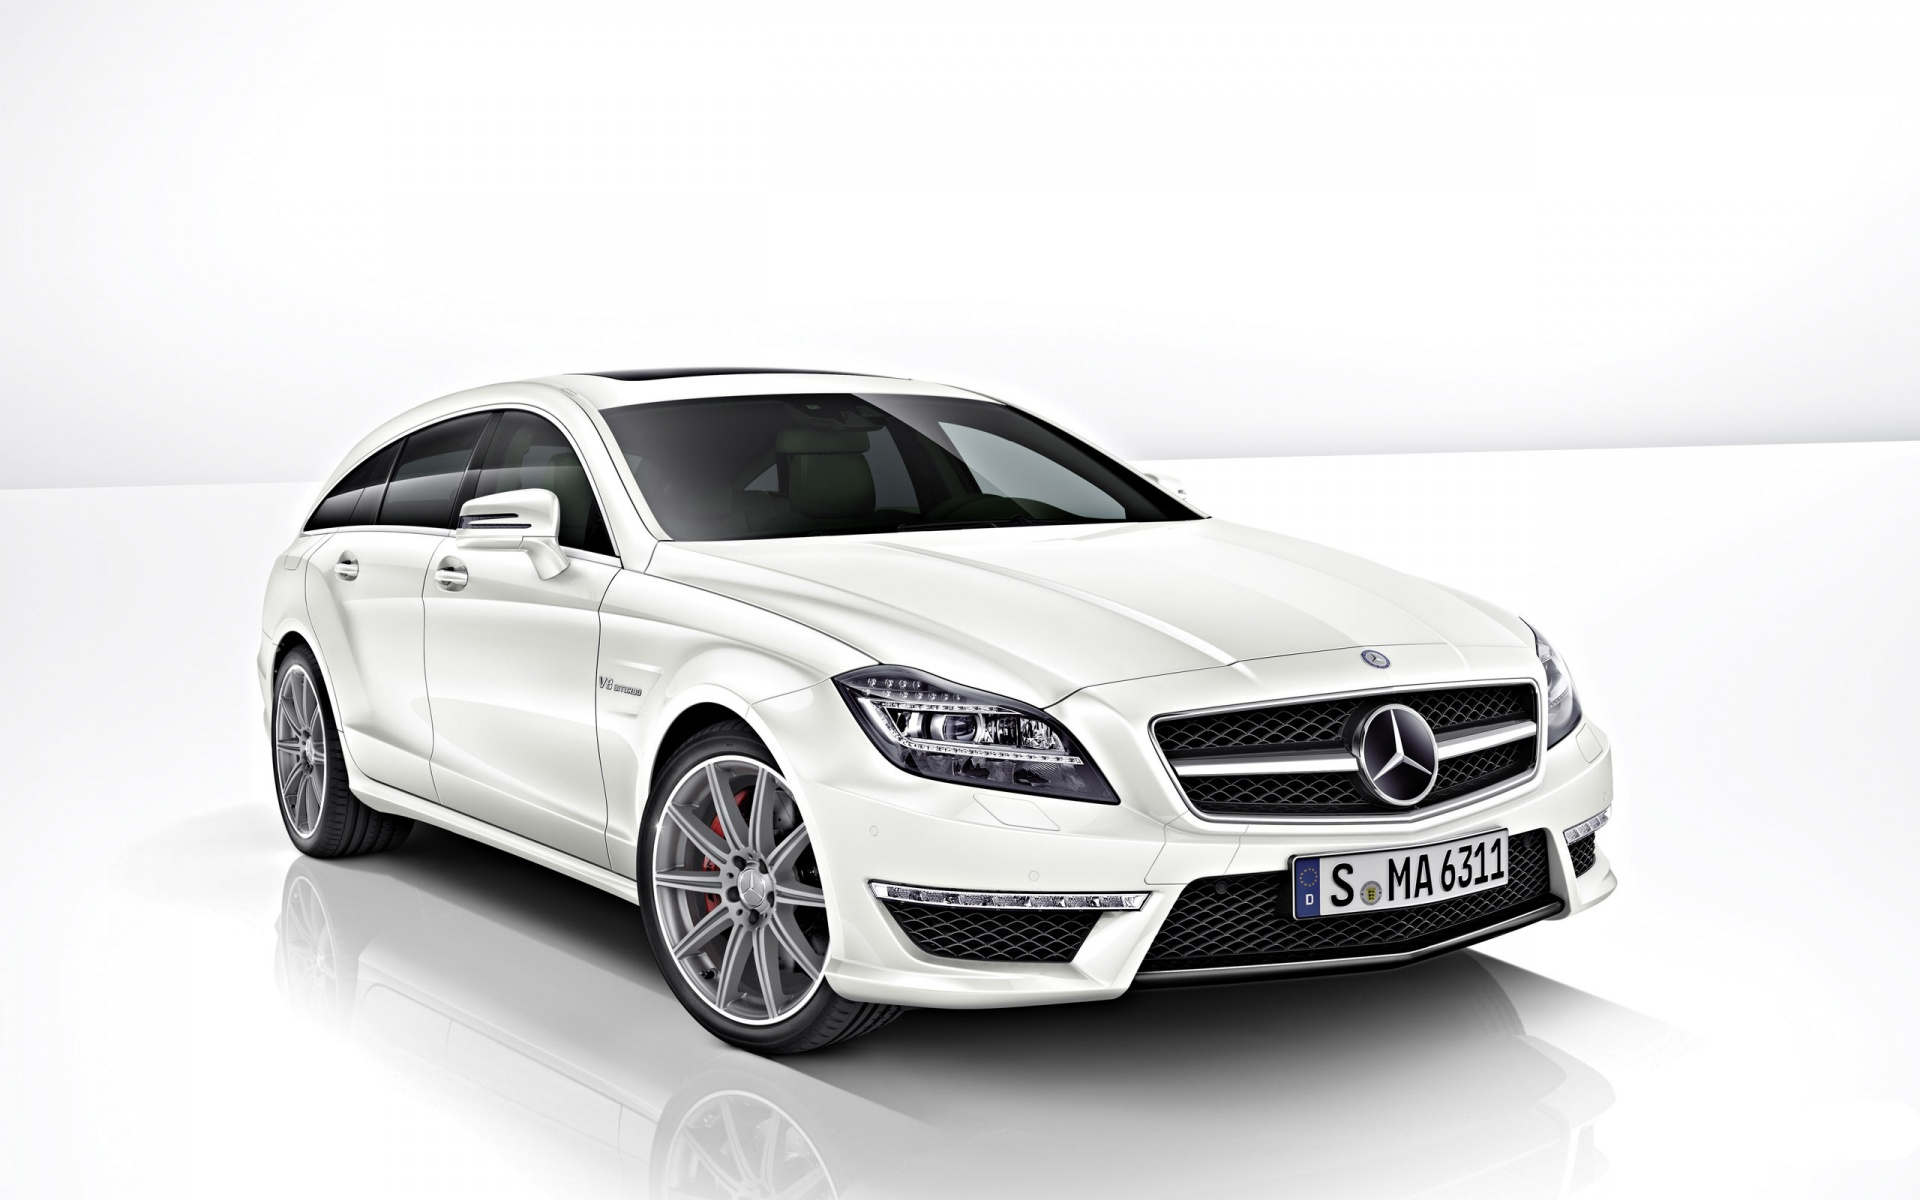 Benz hd car Windows 8 Wallpapers Collection All for Windows 10 1920x1200